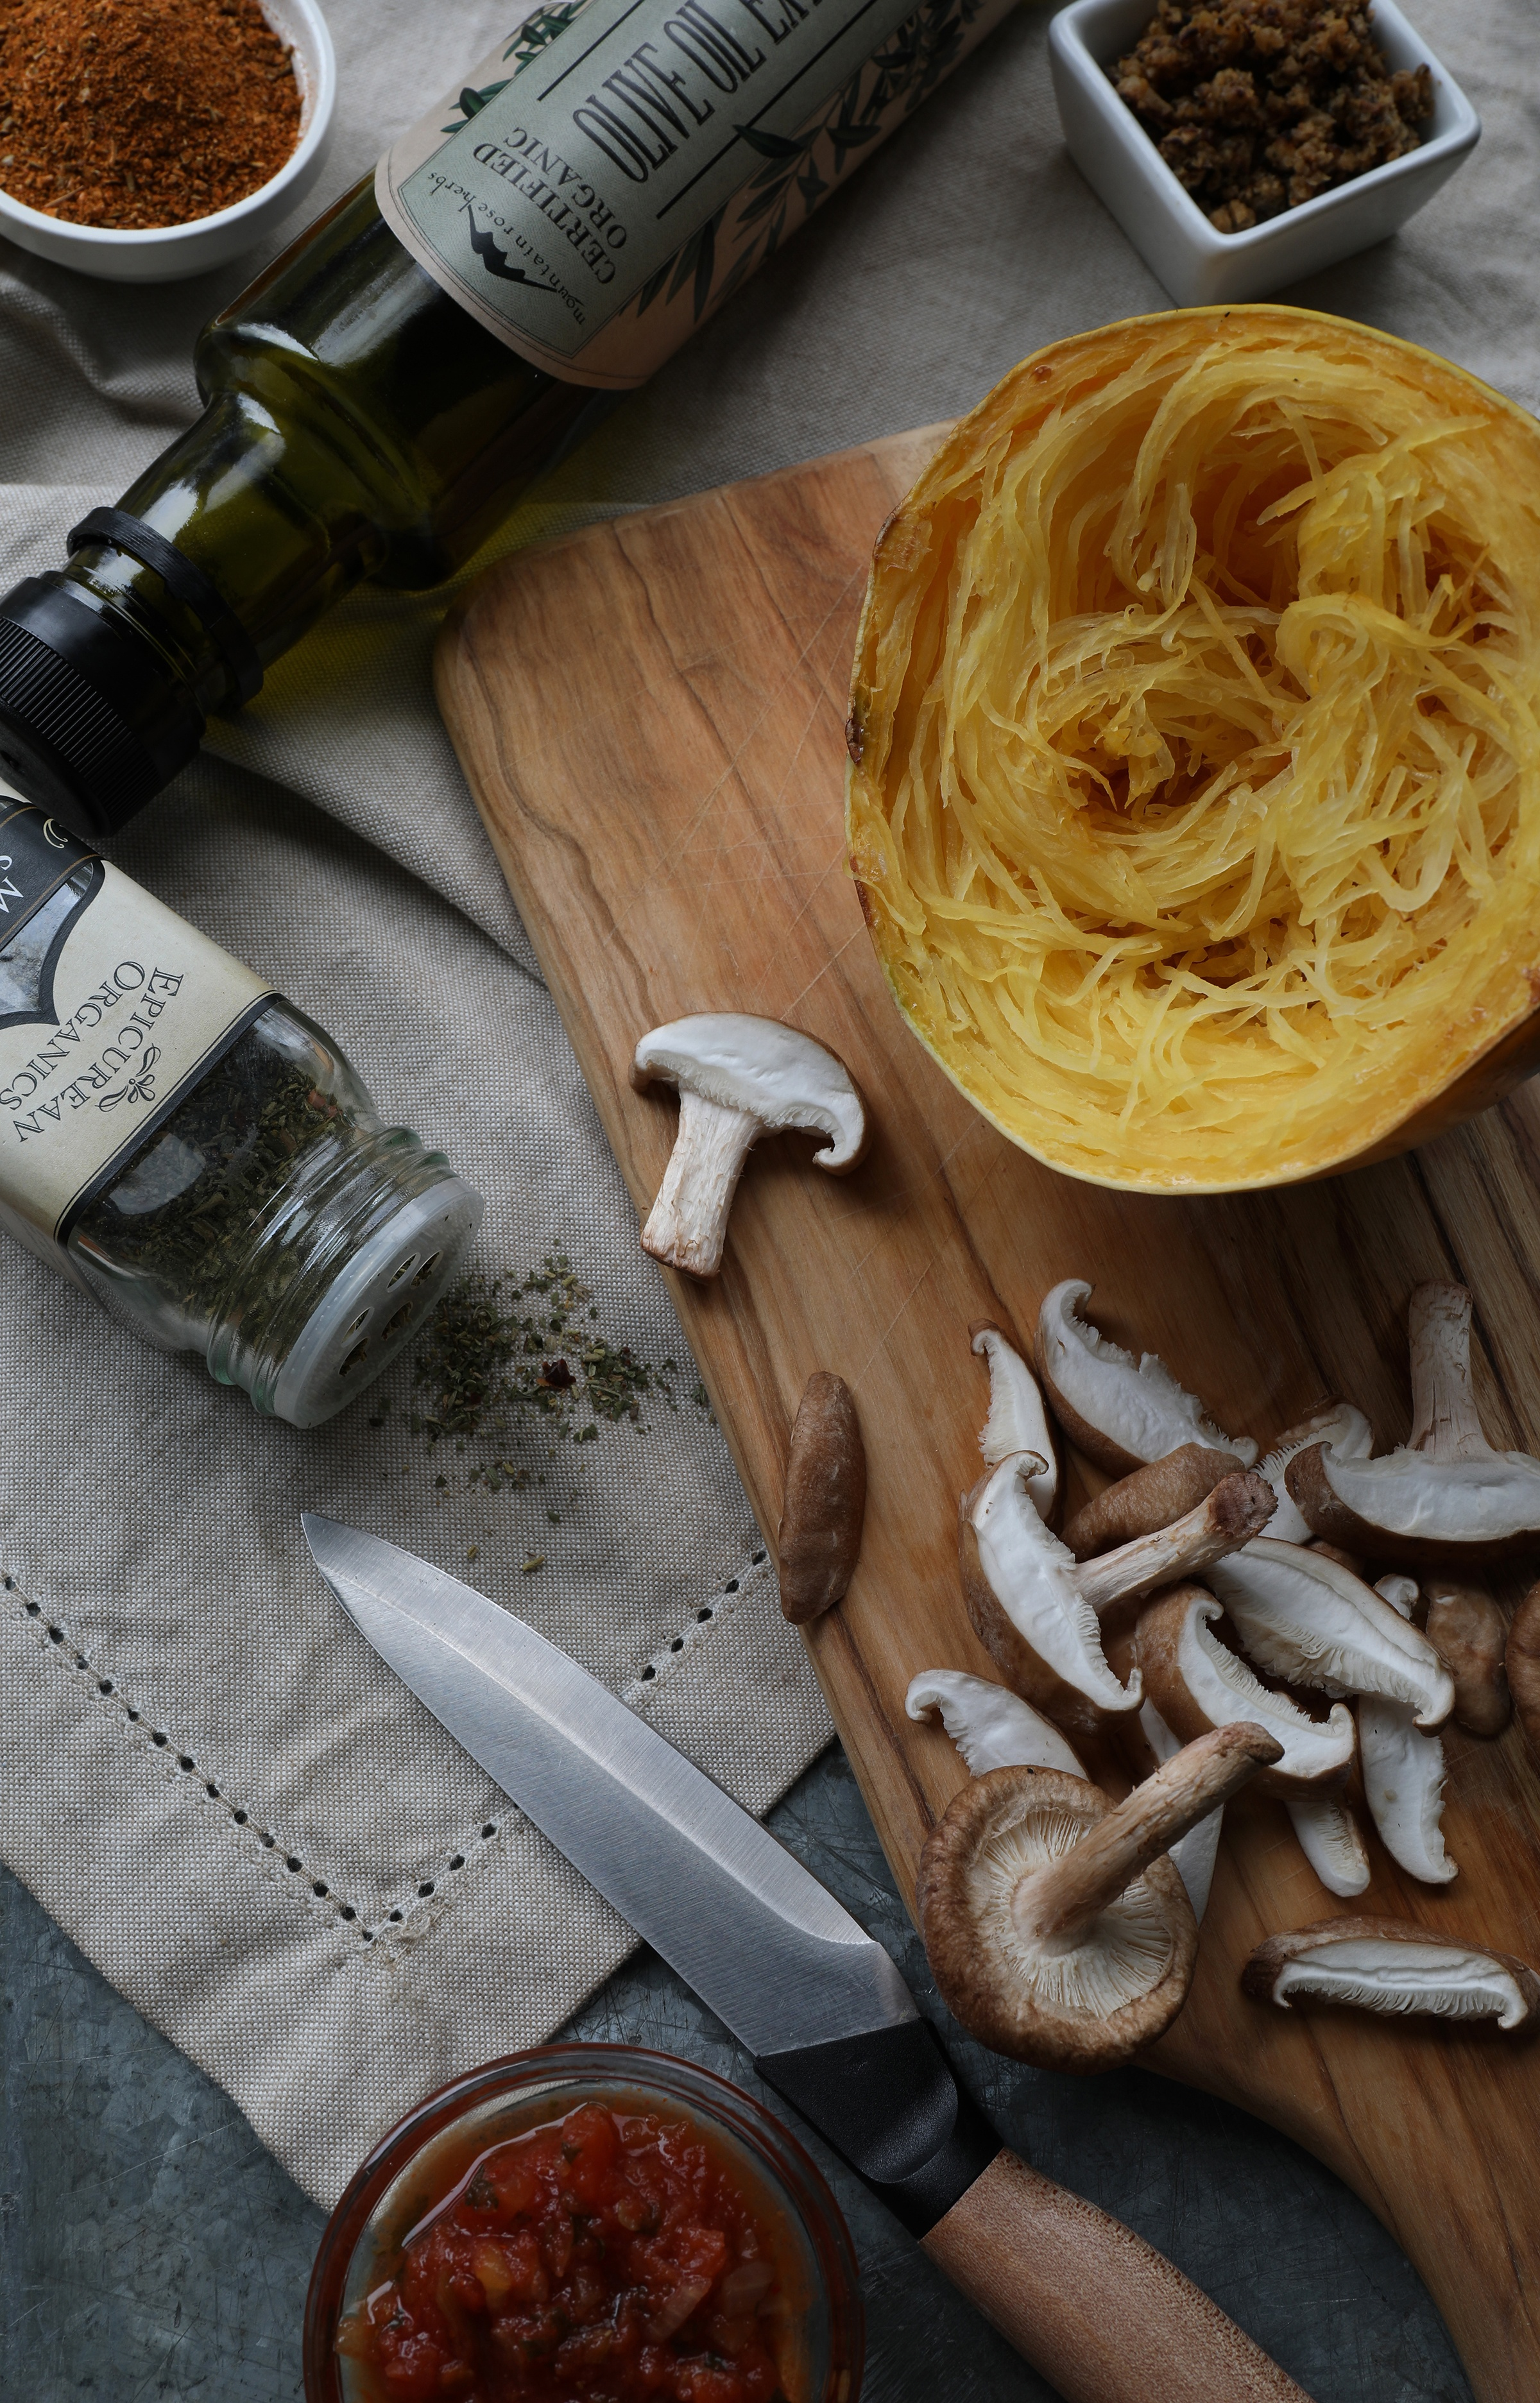 Ingredients laying out on cutting board to make spaghetti squash bowls